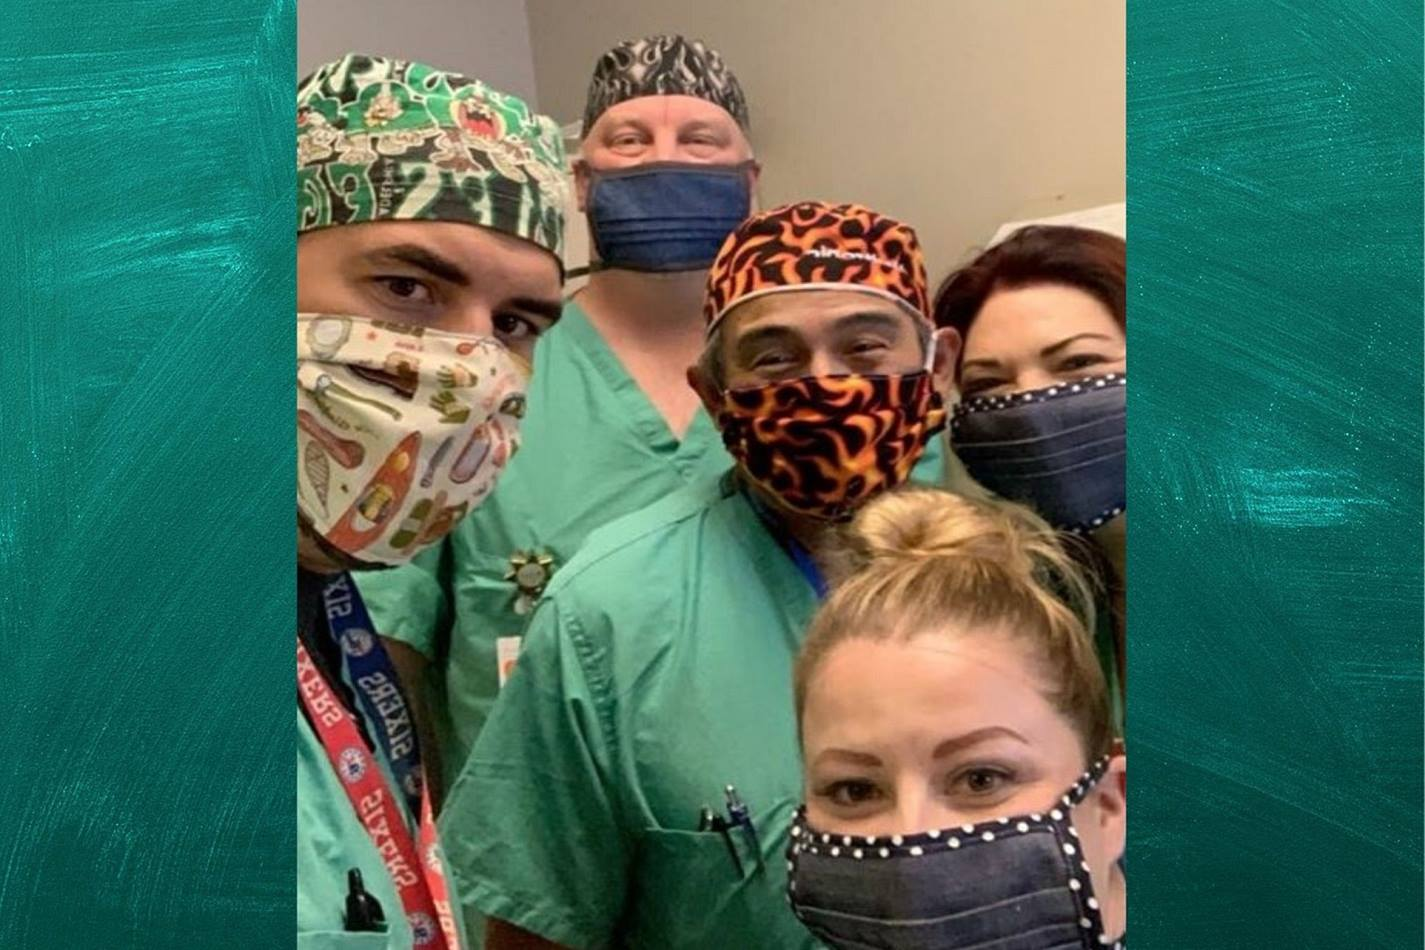 Nurses at San Antonio's Baptist Hospital has received masks from La Trinidad United Methodist Church's sewing group. Photo by Valerie Mendoza